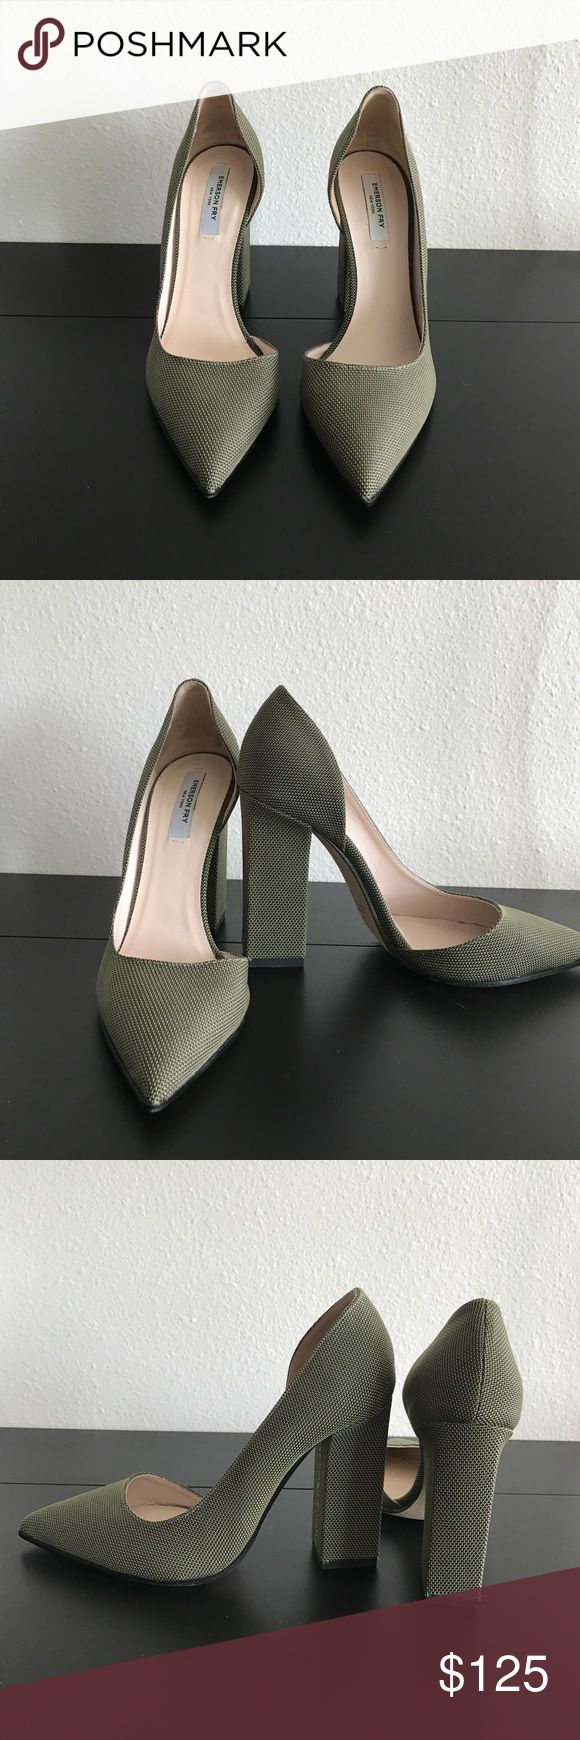 """Emerson Fry D'Orsay Heels Olive colored 4"""" block heel. Beautiful and classic heel to dress up or down. Shoes Heels"""